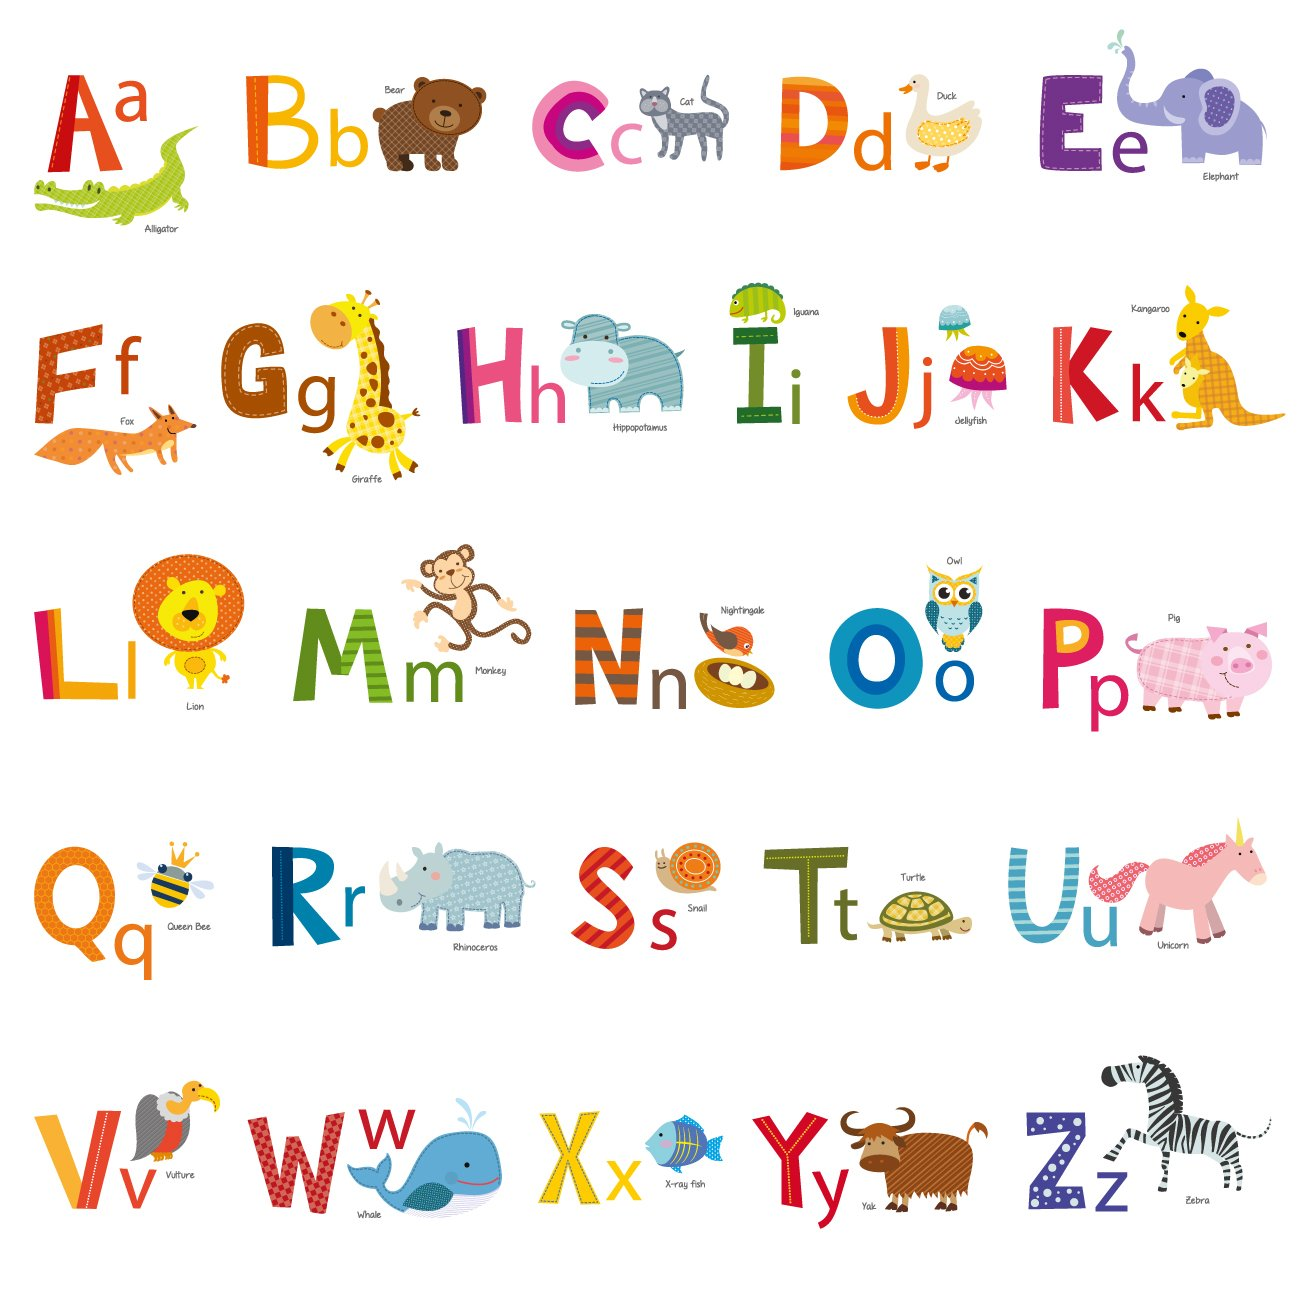 Decowall DA-1503A Animal Alphabet ABC Kids Wall Decals Wall Stickers Peel and Stick Removable Wall Stickers for Kids Nursery Bedroom Living Room